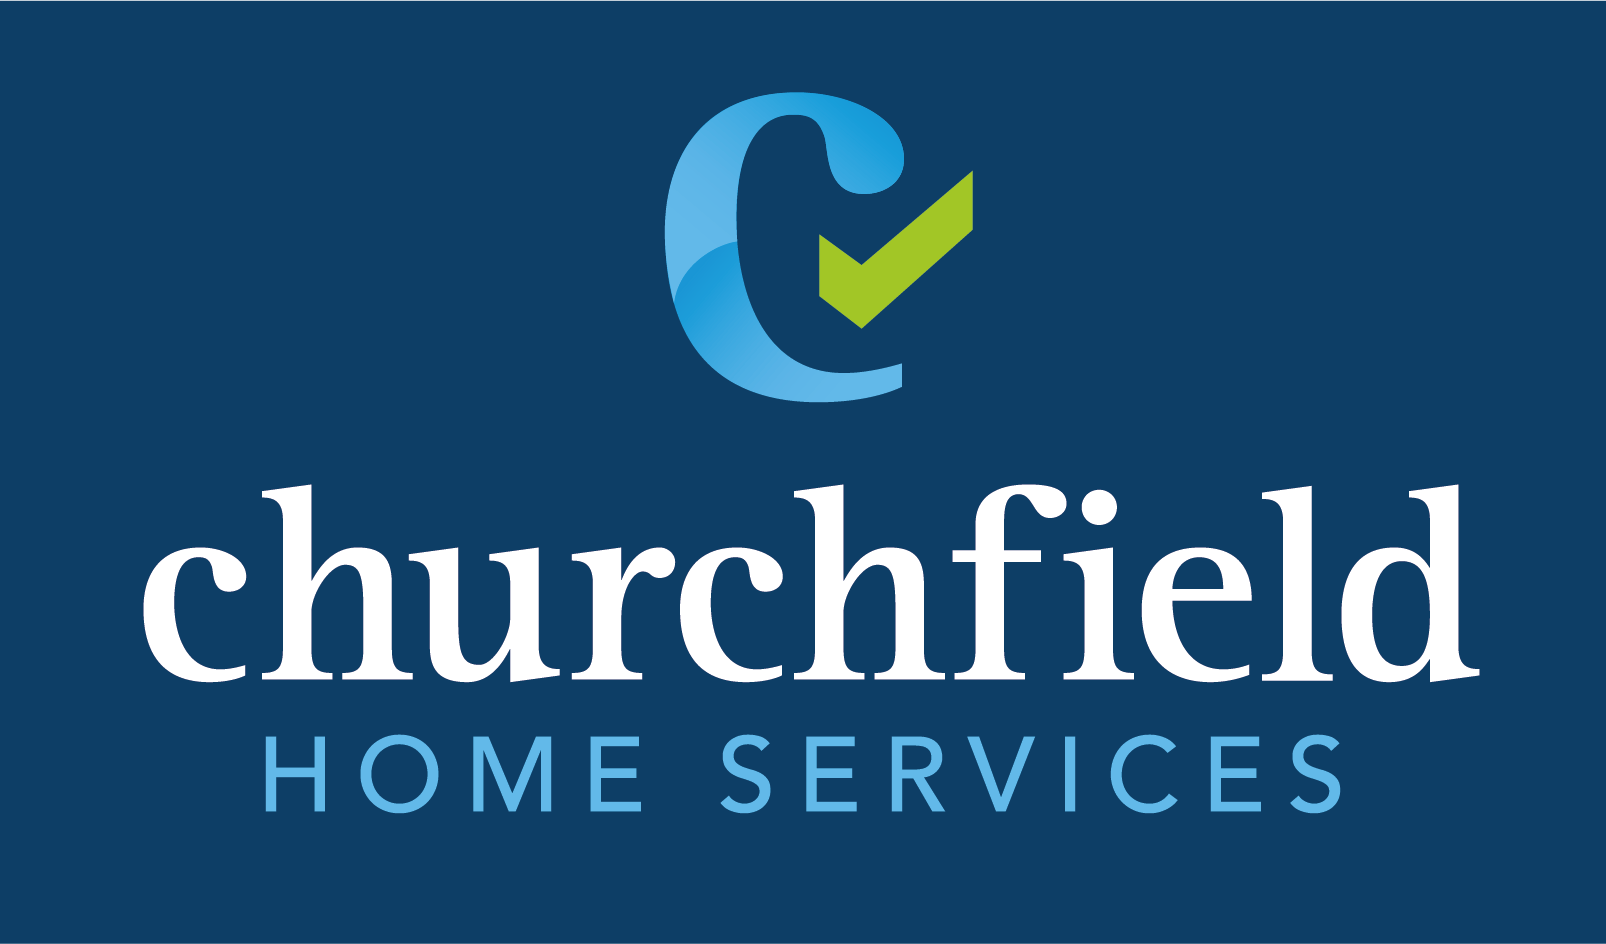 Churchfield Home Services